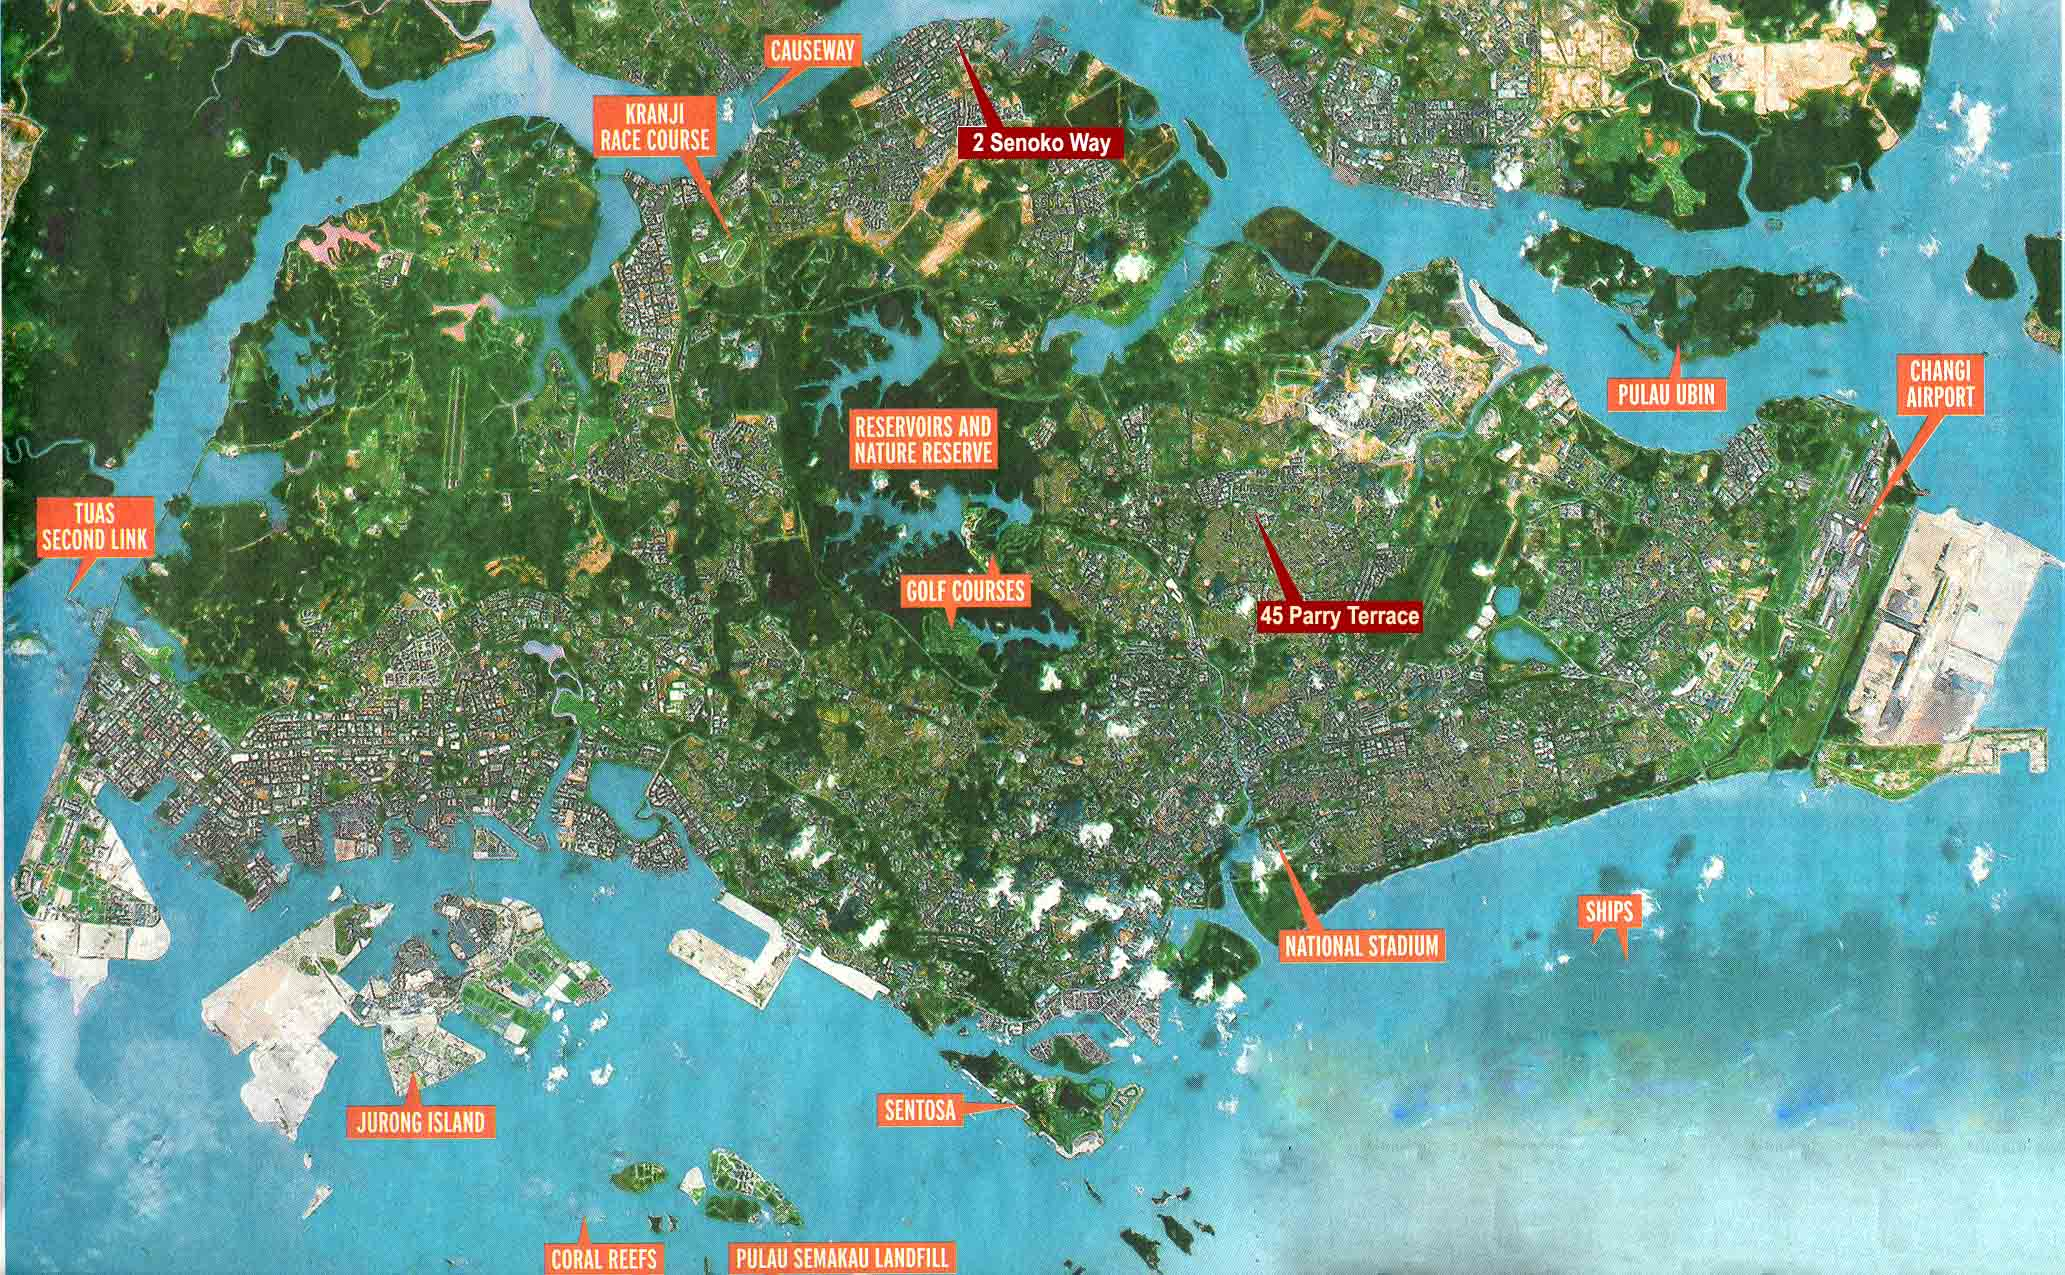 Large singapore city maps for free download and print high detailed map of singapore city 2 gumiabroncs Choice Image